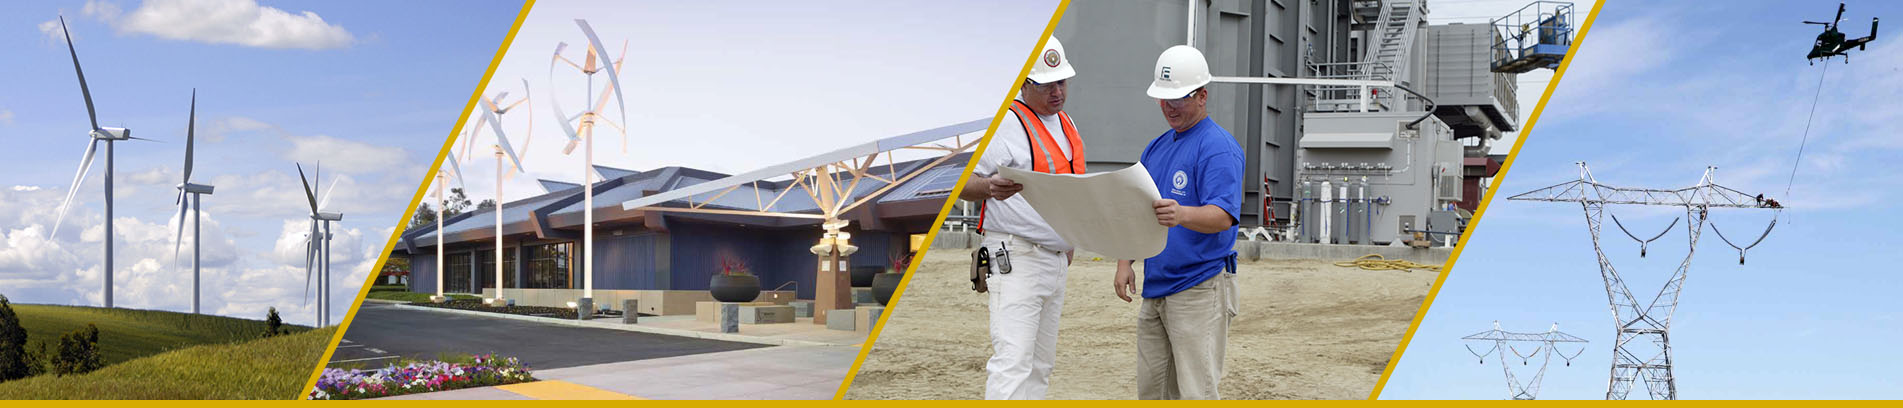 Powering America Leading The Electrical Construction Industry